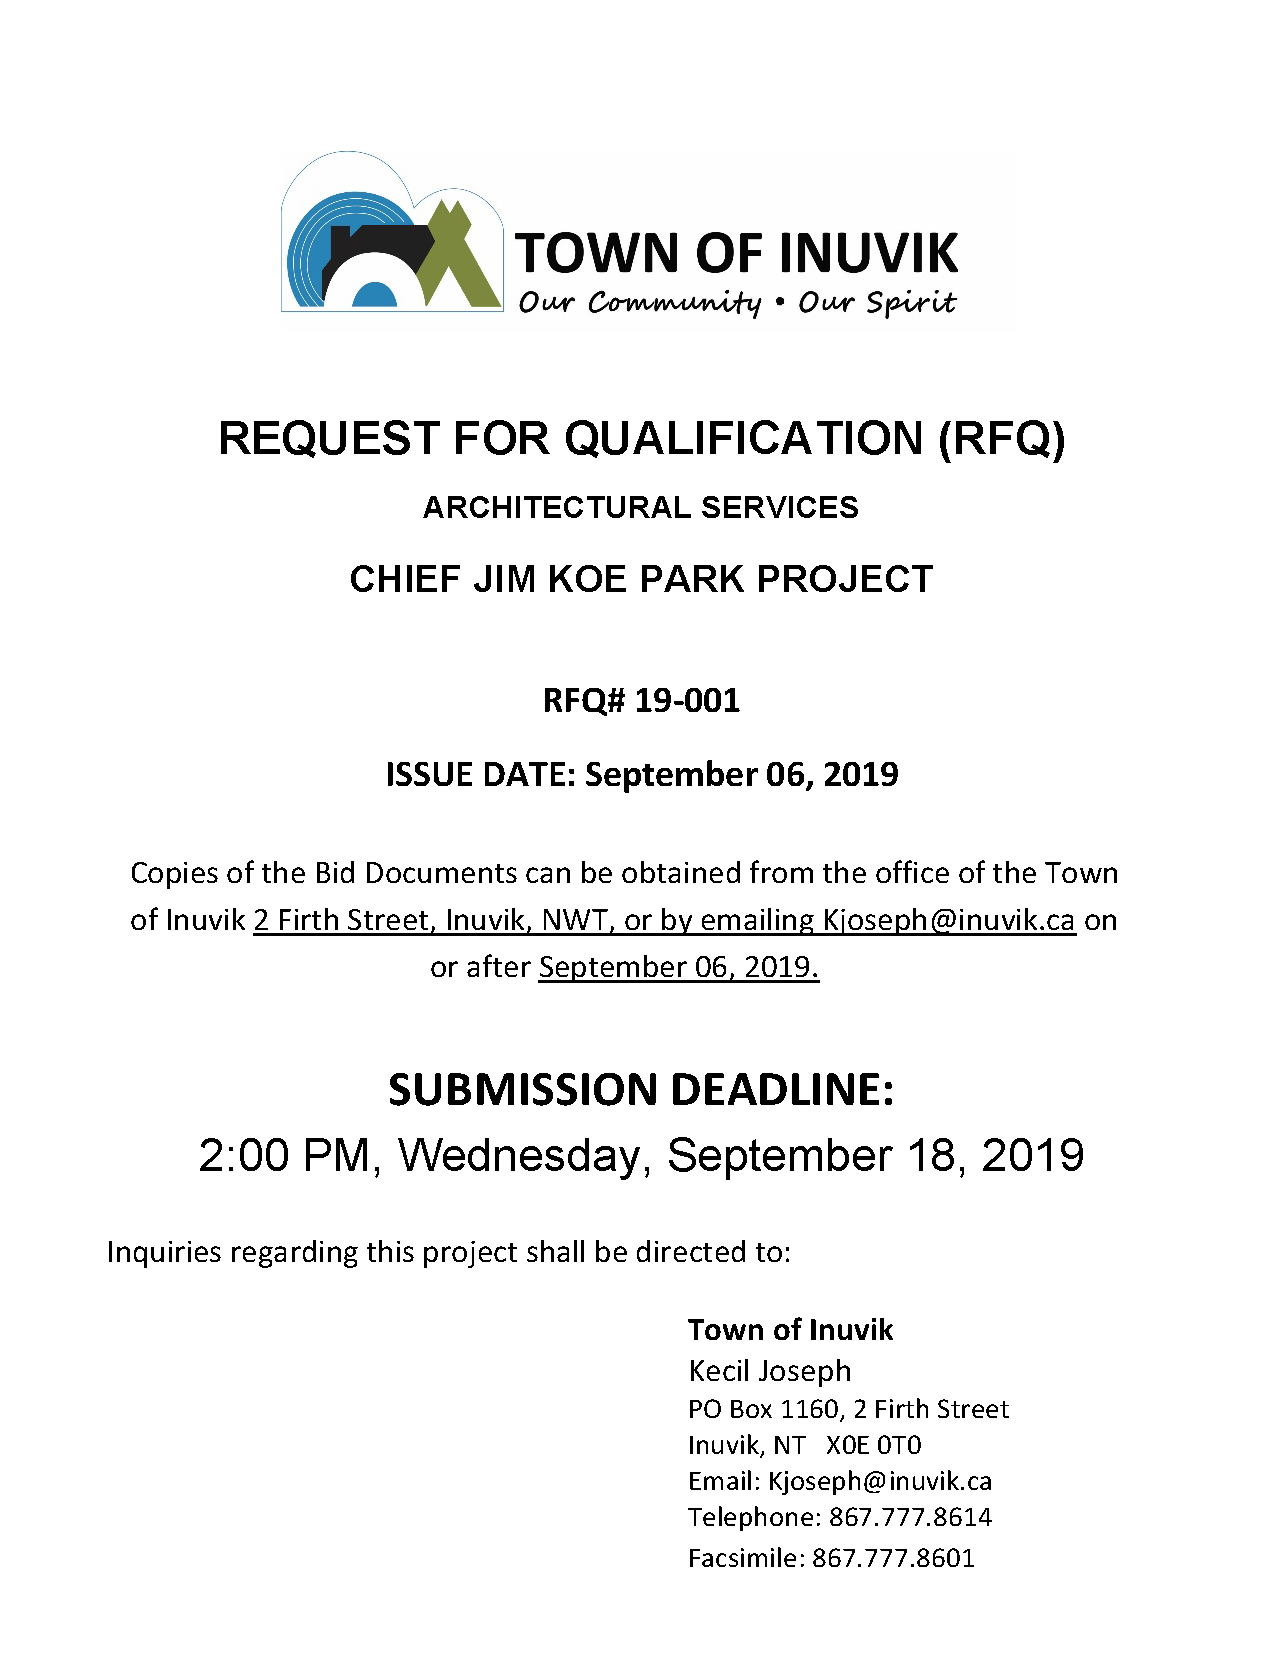 Request for Qualification